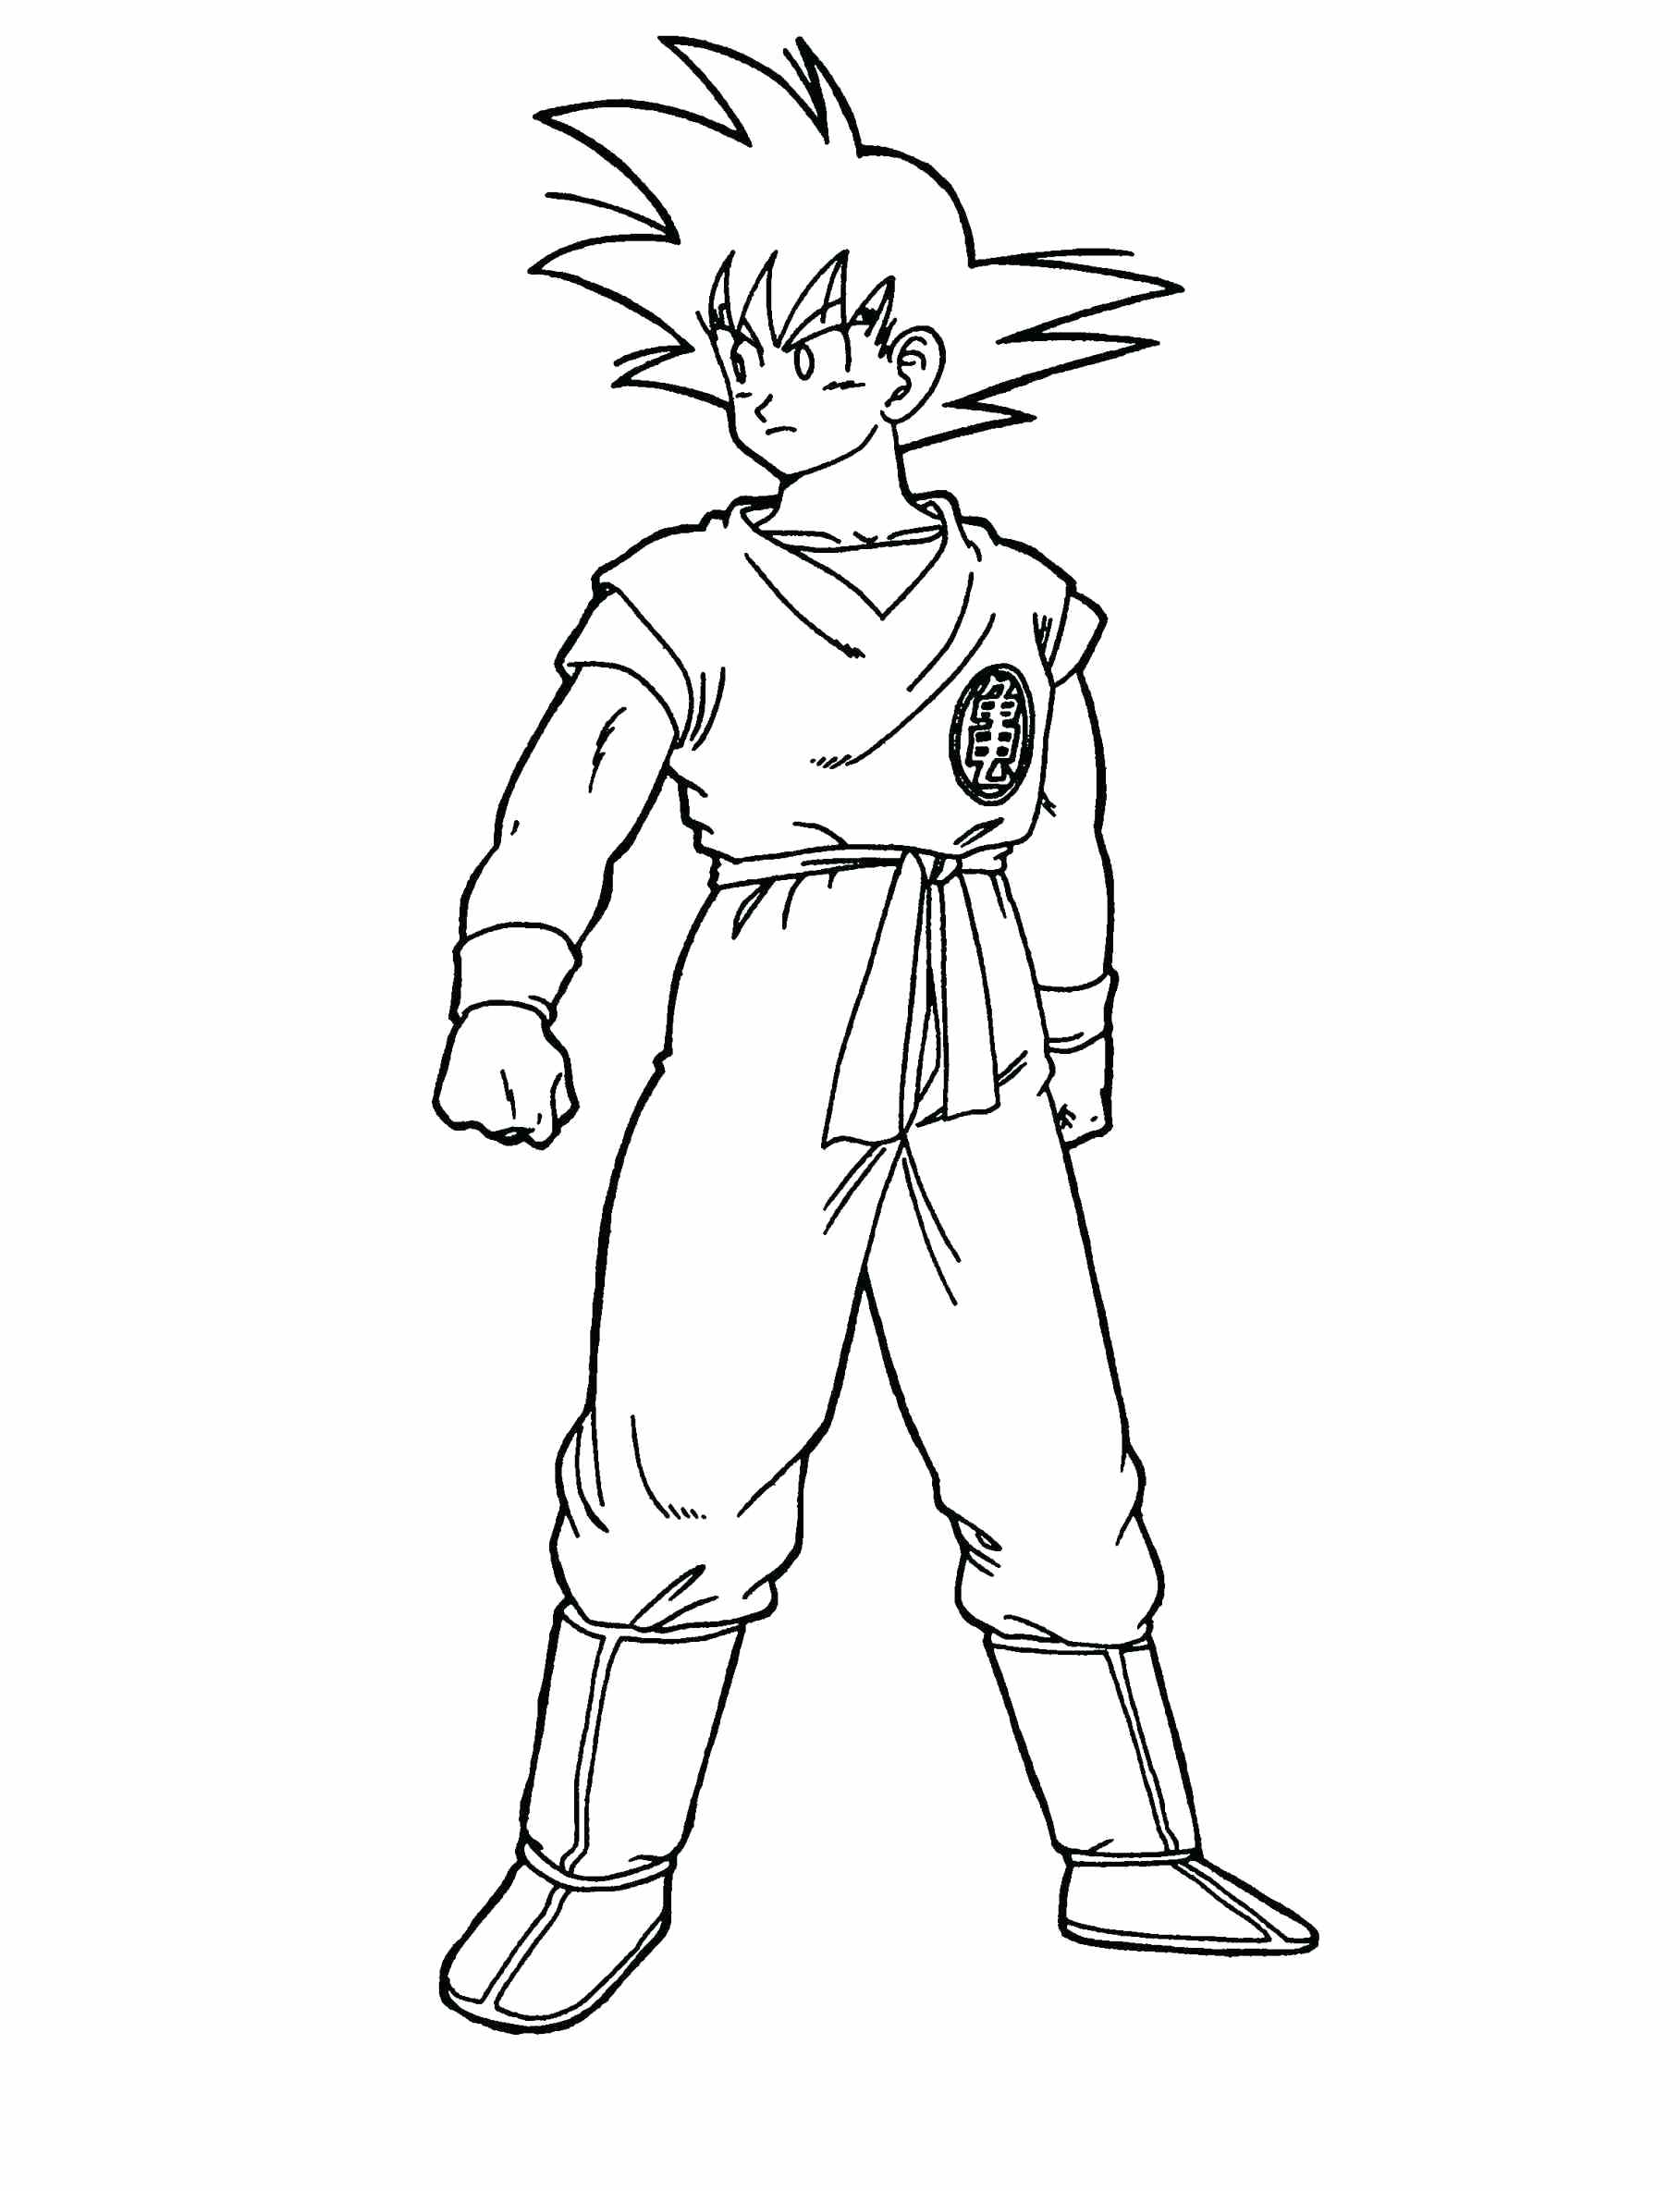 super saiyans coloring pages son goku super saiyan god super saiyan by dark crawler on saiyans super pages coloring